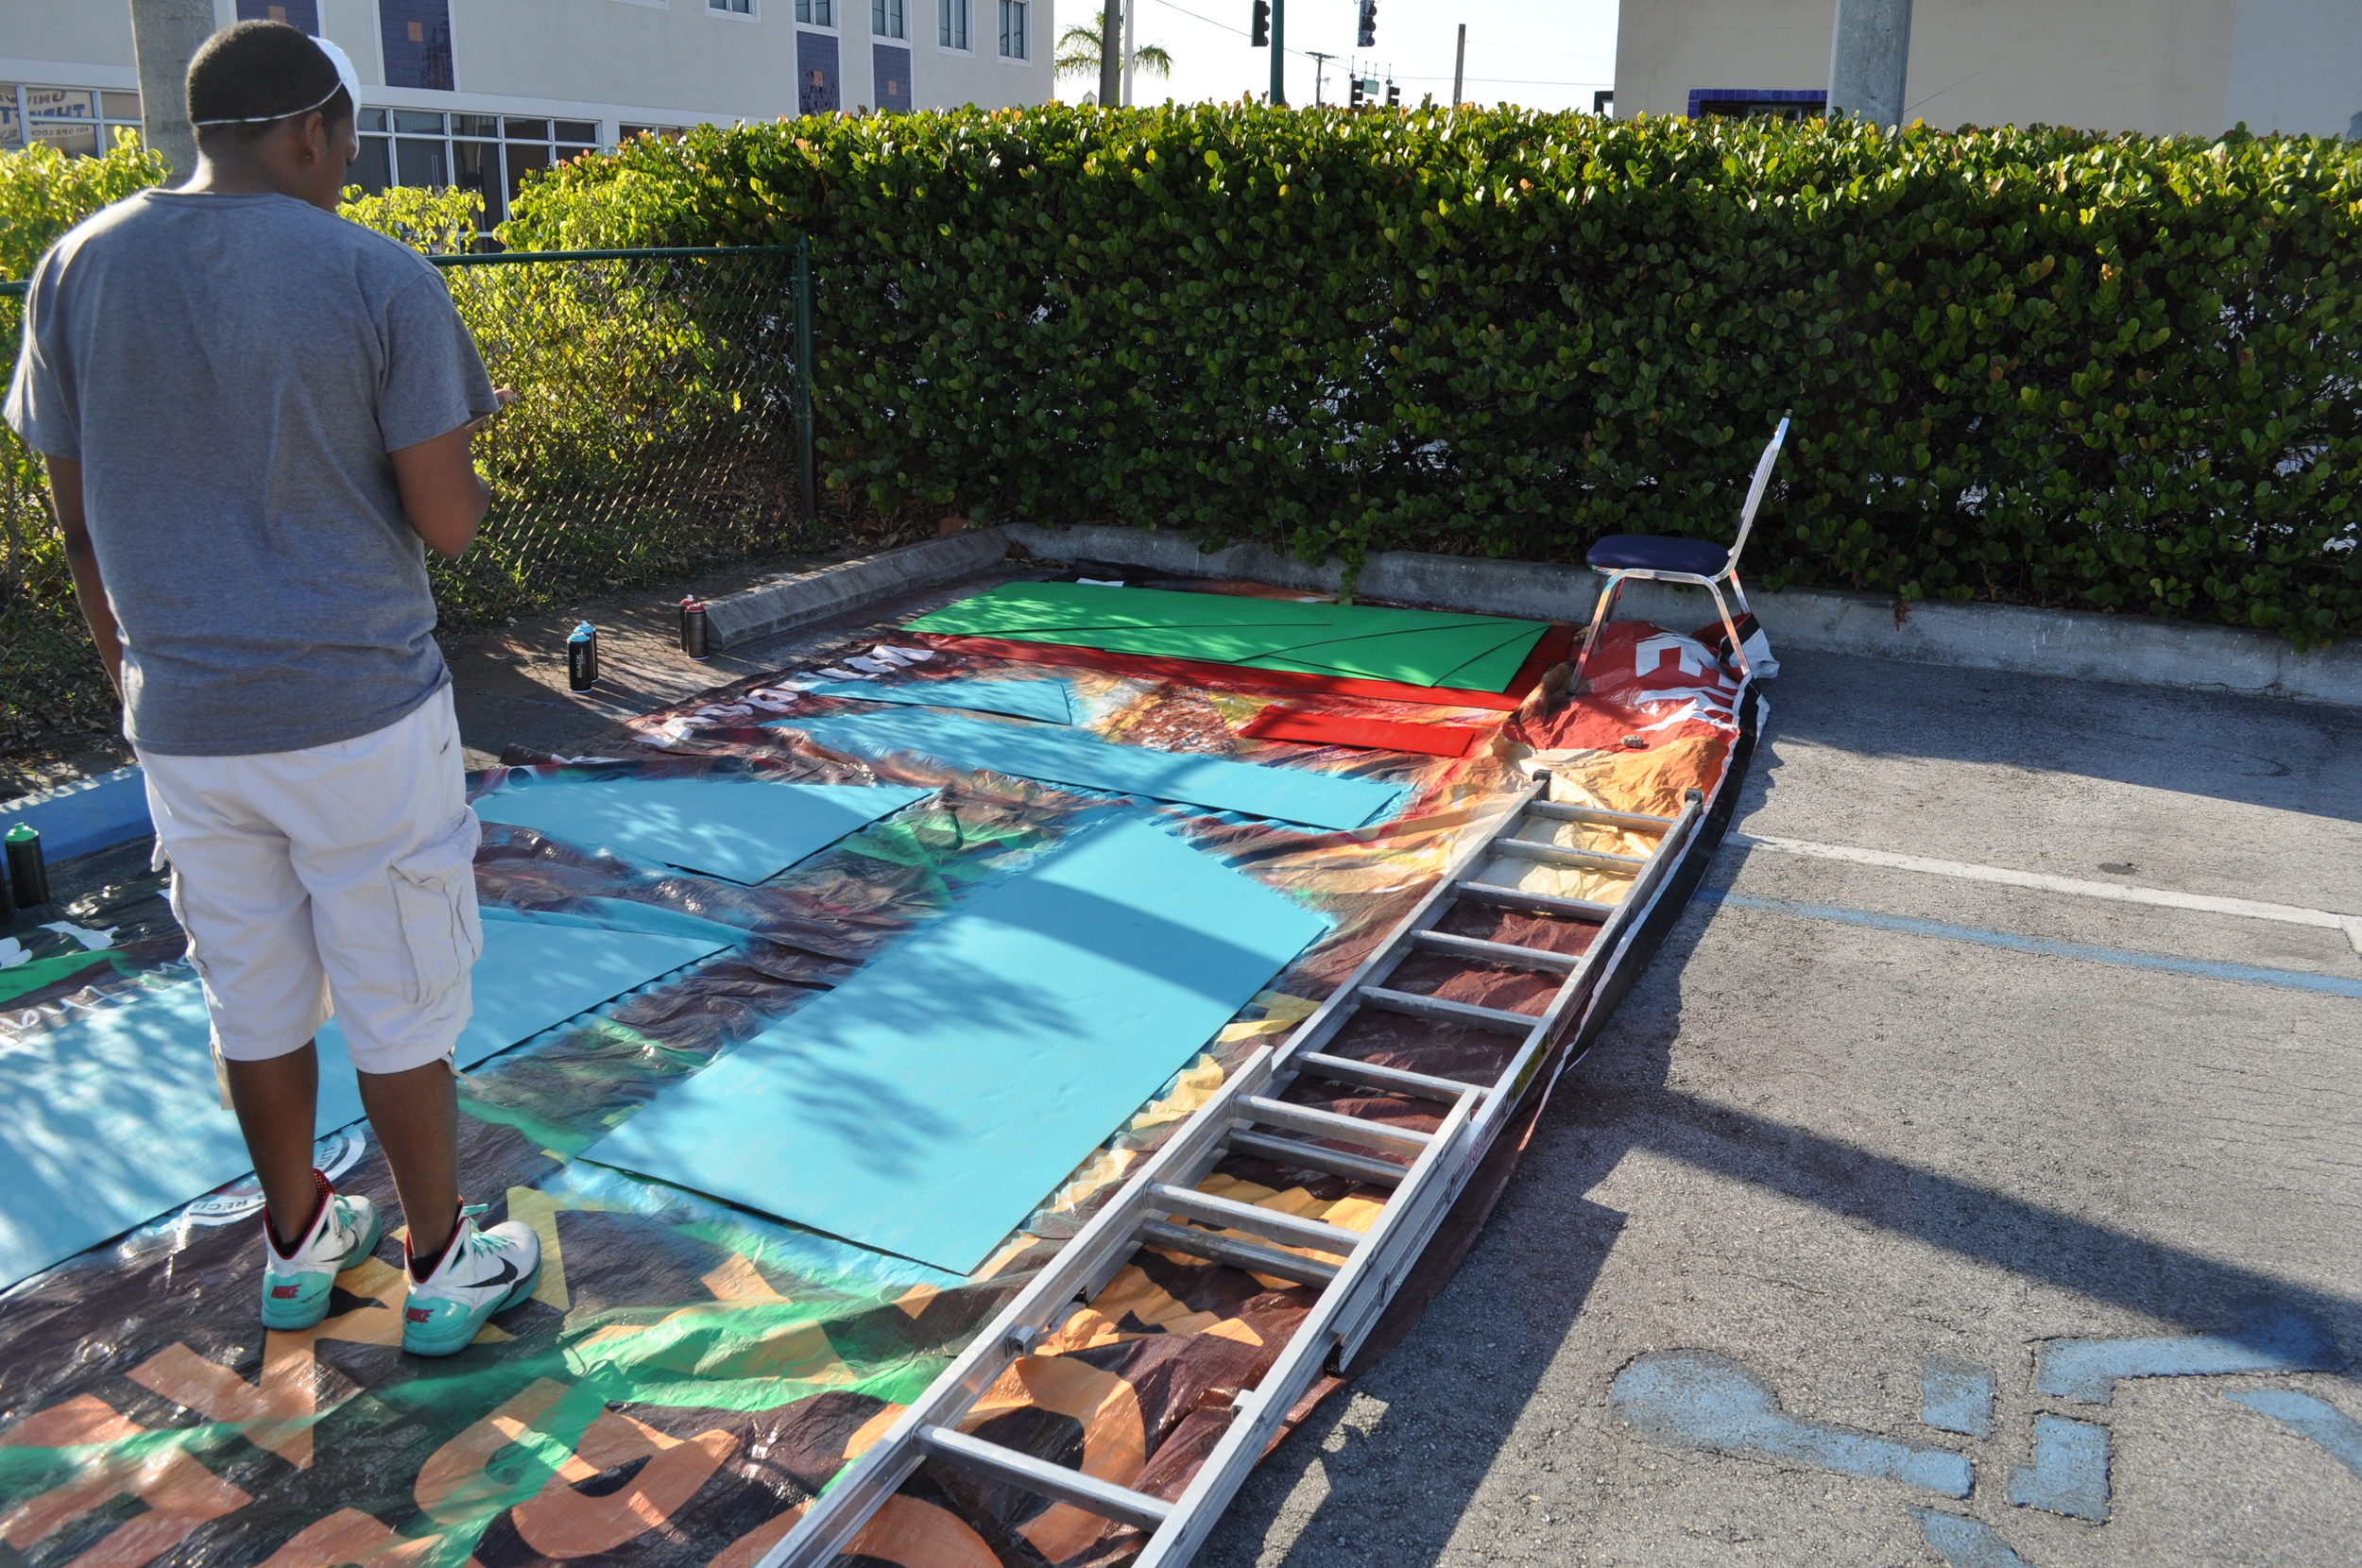 Germane spray paints the cardboard for tomorrow's Pop-Up Park before the sunsets.